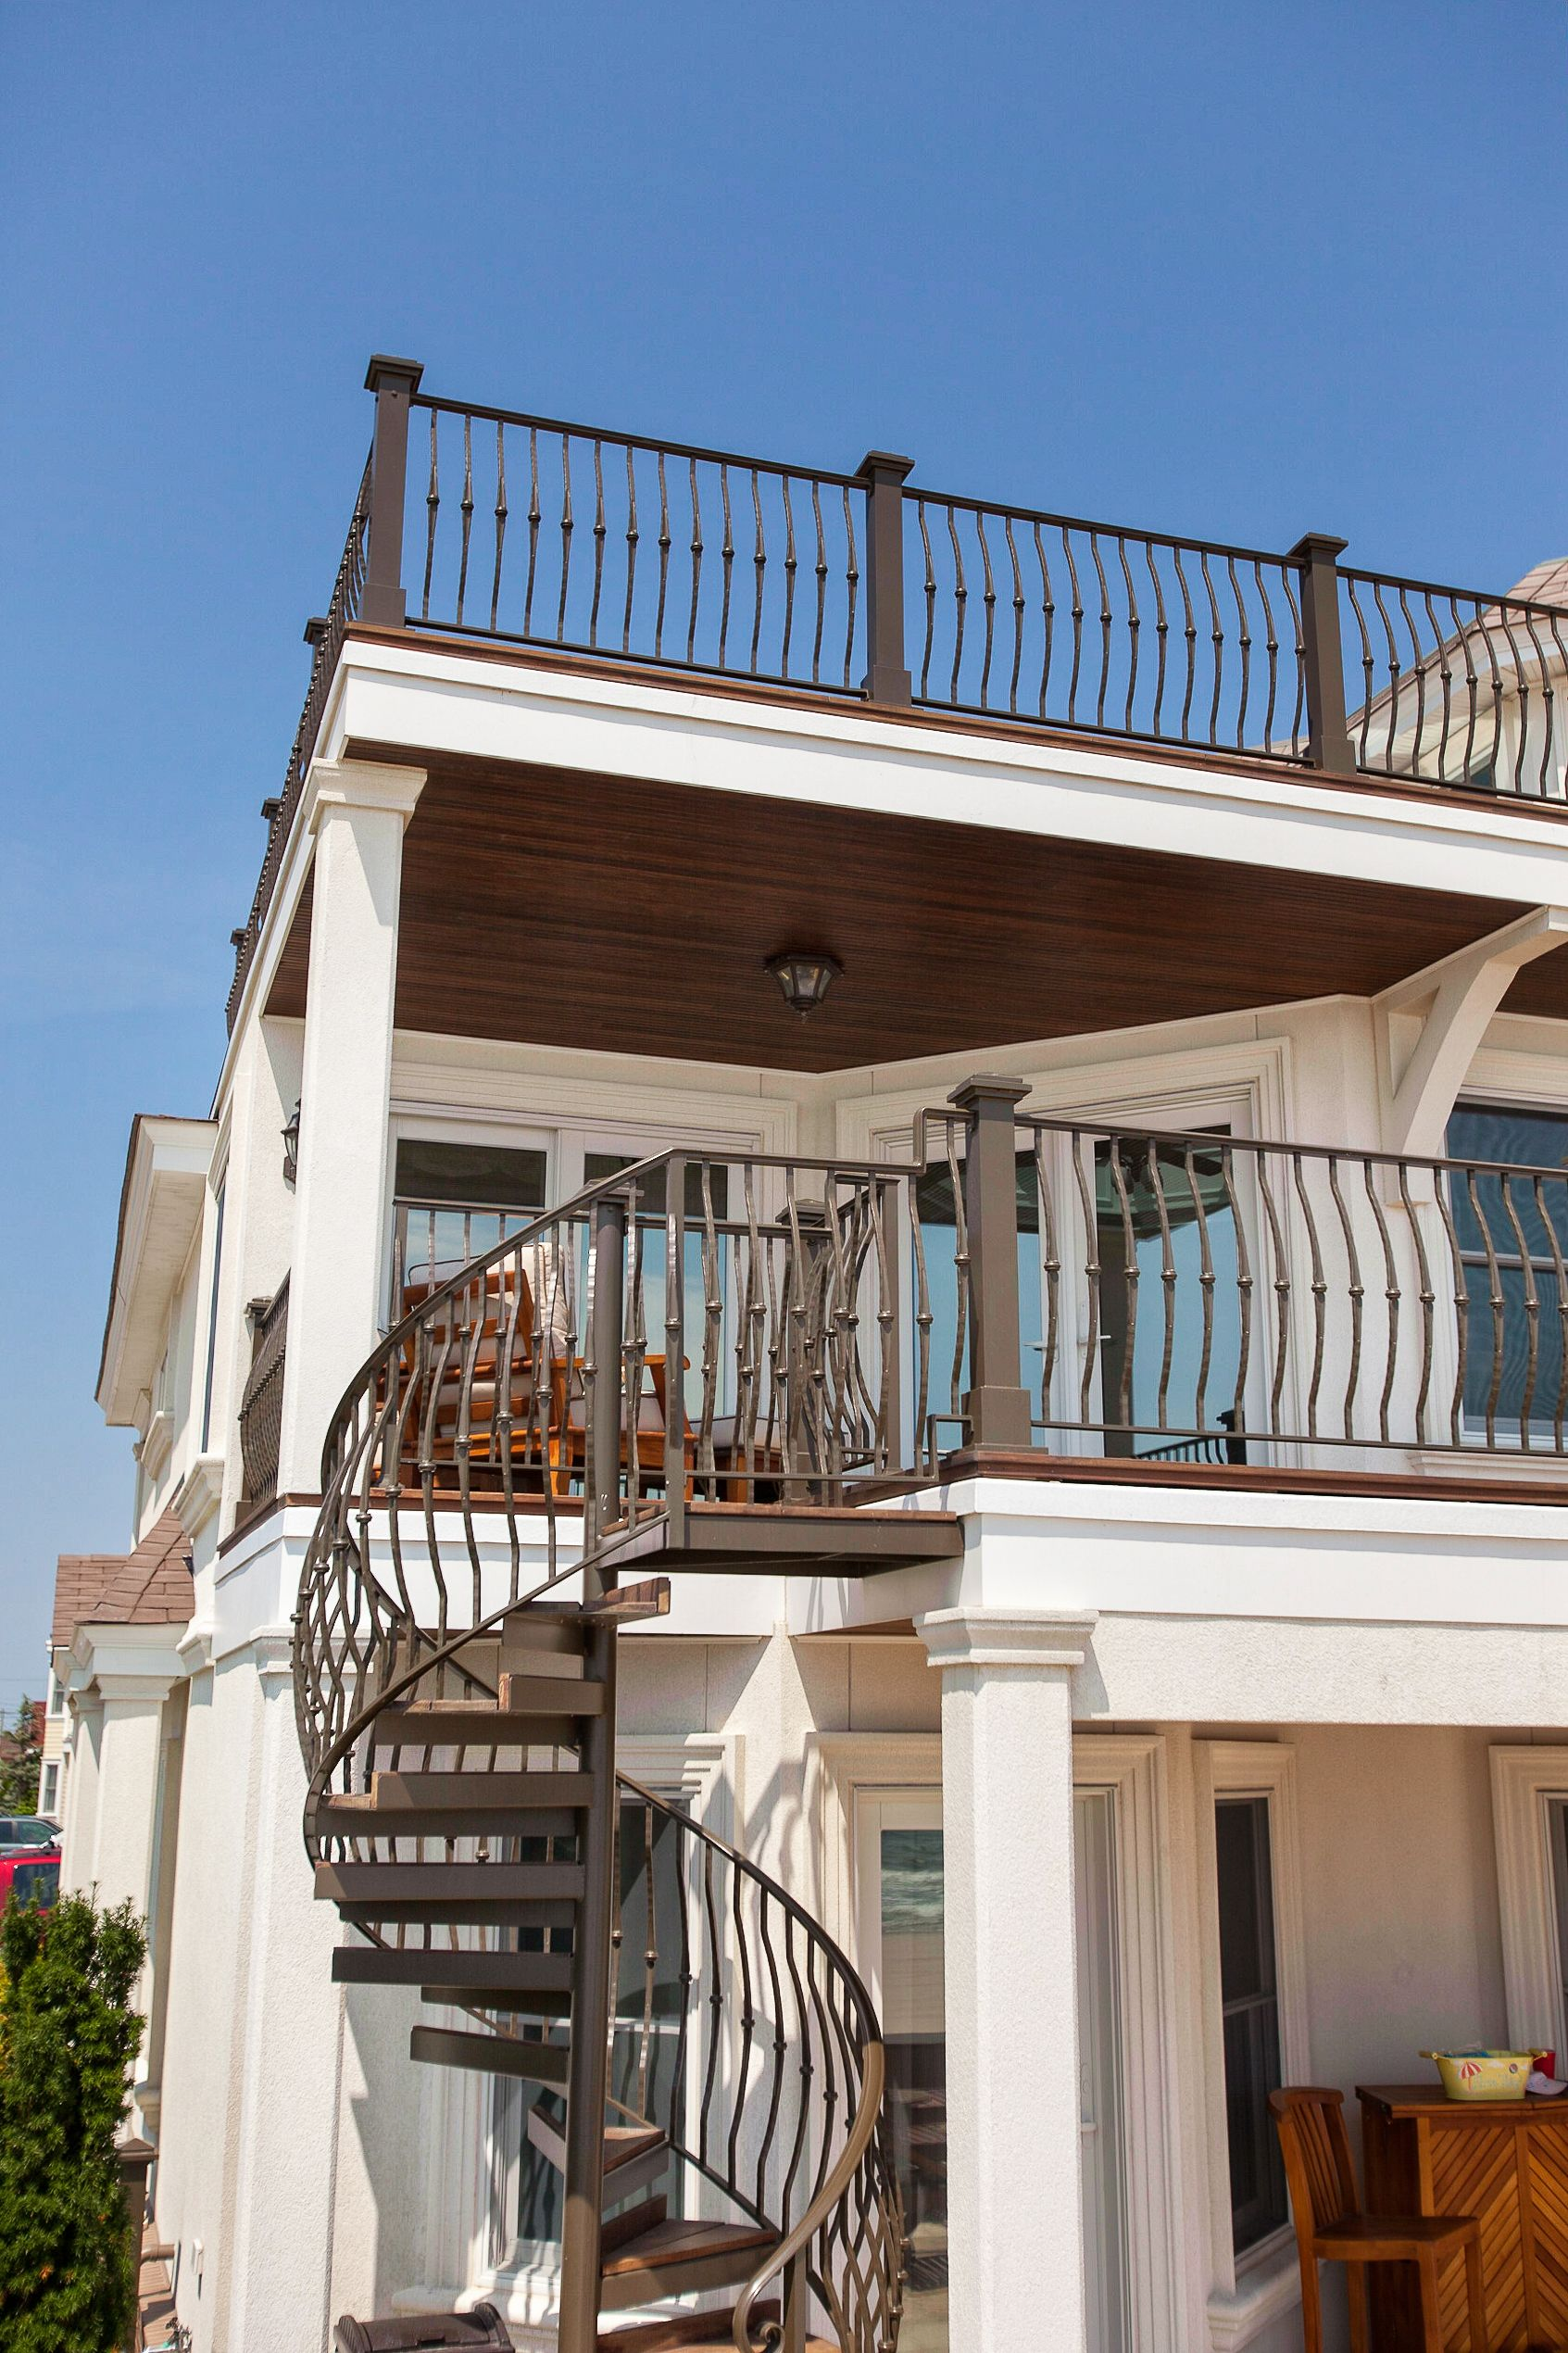 Best Spiral Stair And Deck Railing For A Beach House Balcony 400 x 300